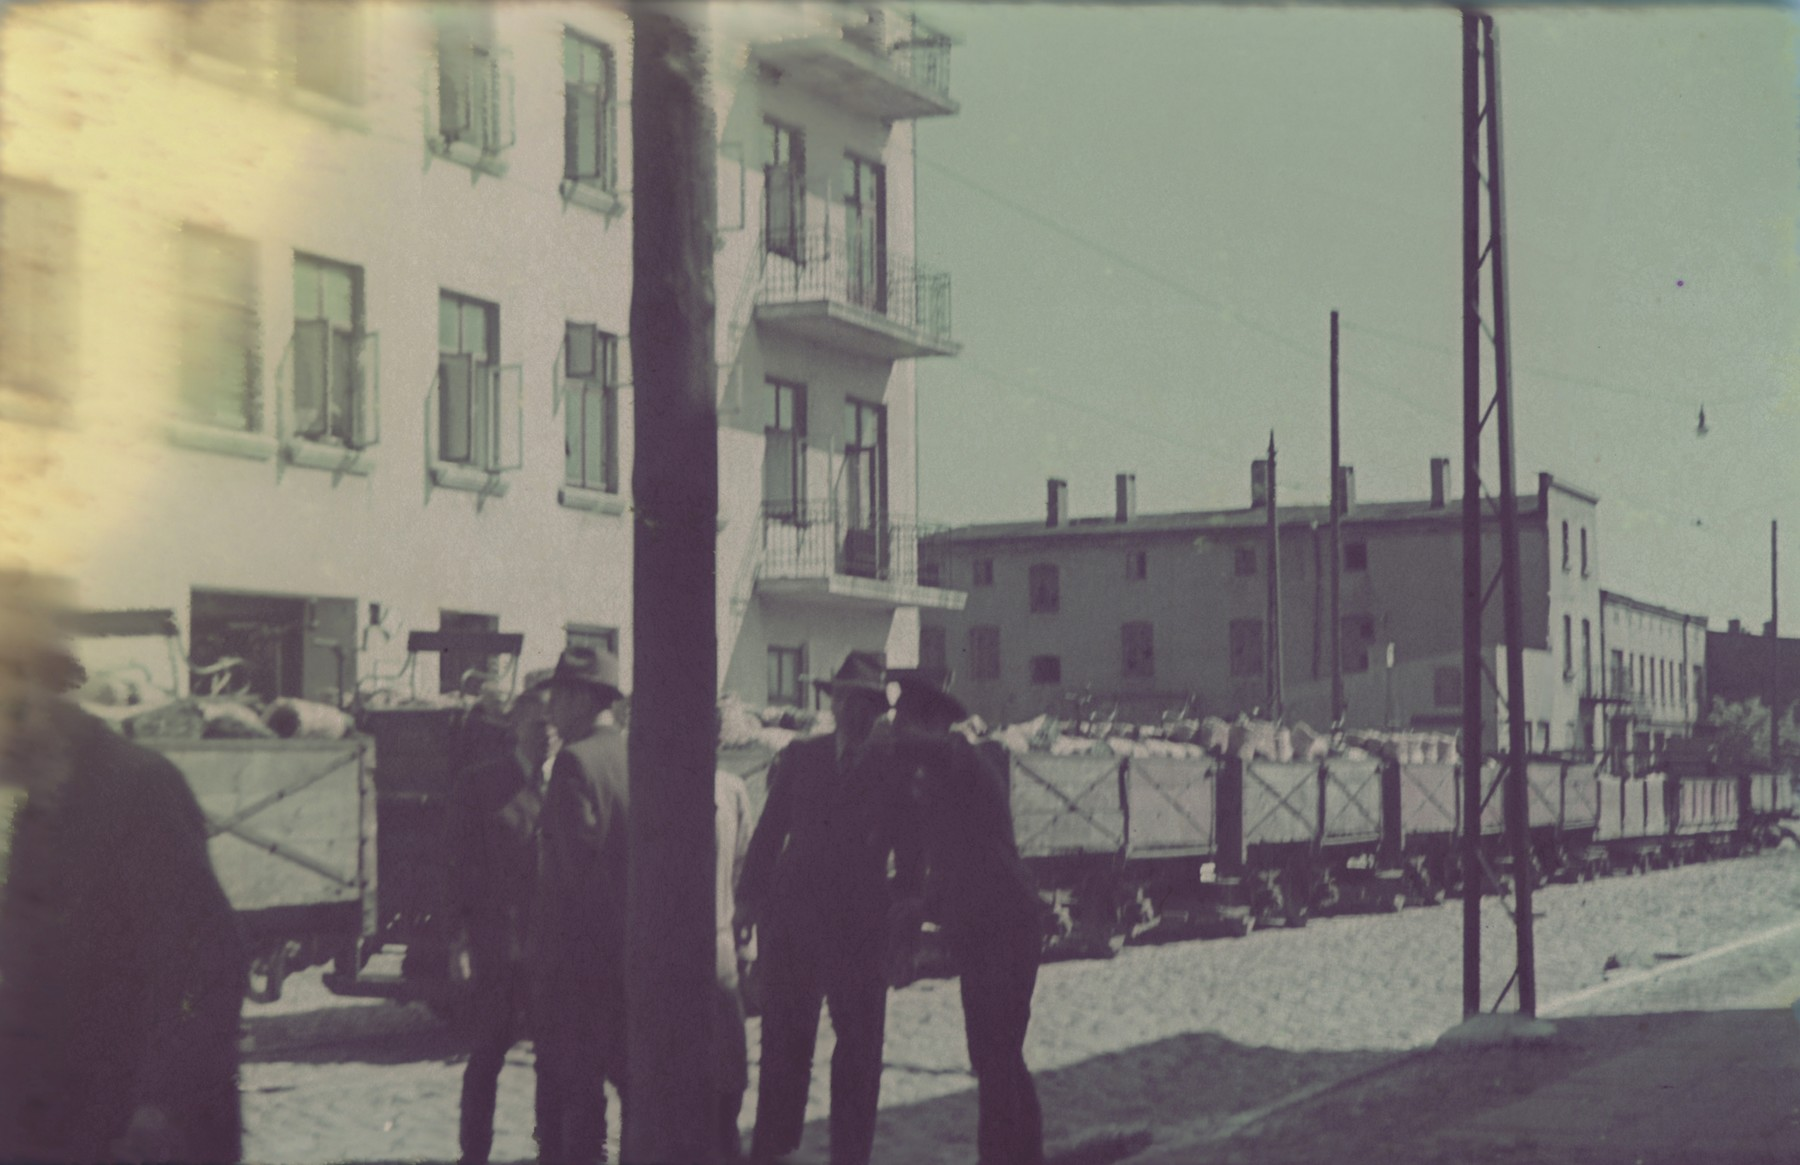 """A train filled with coils of straw for the shoe factory travels through a street of the Lodz ghetto.  Original German caption: """"Litzmannstadt-Getto, Strohschufabrik"""" (straw show factory), #199."""